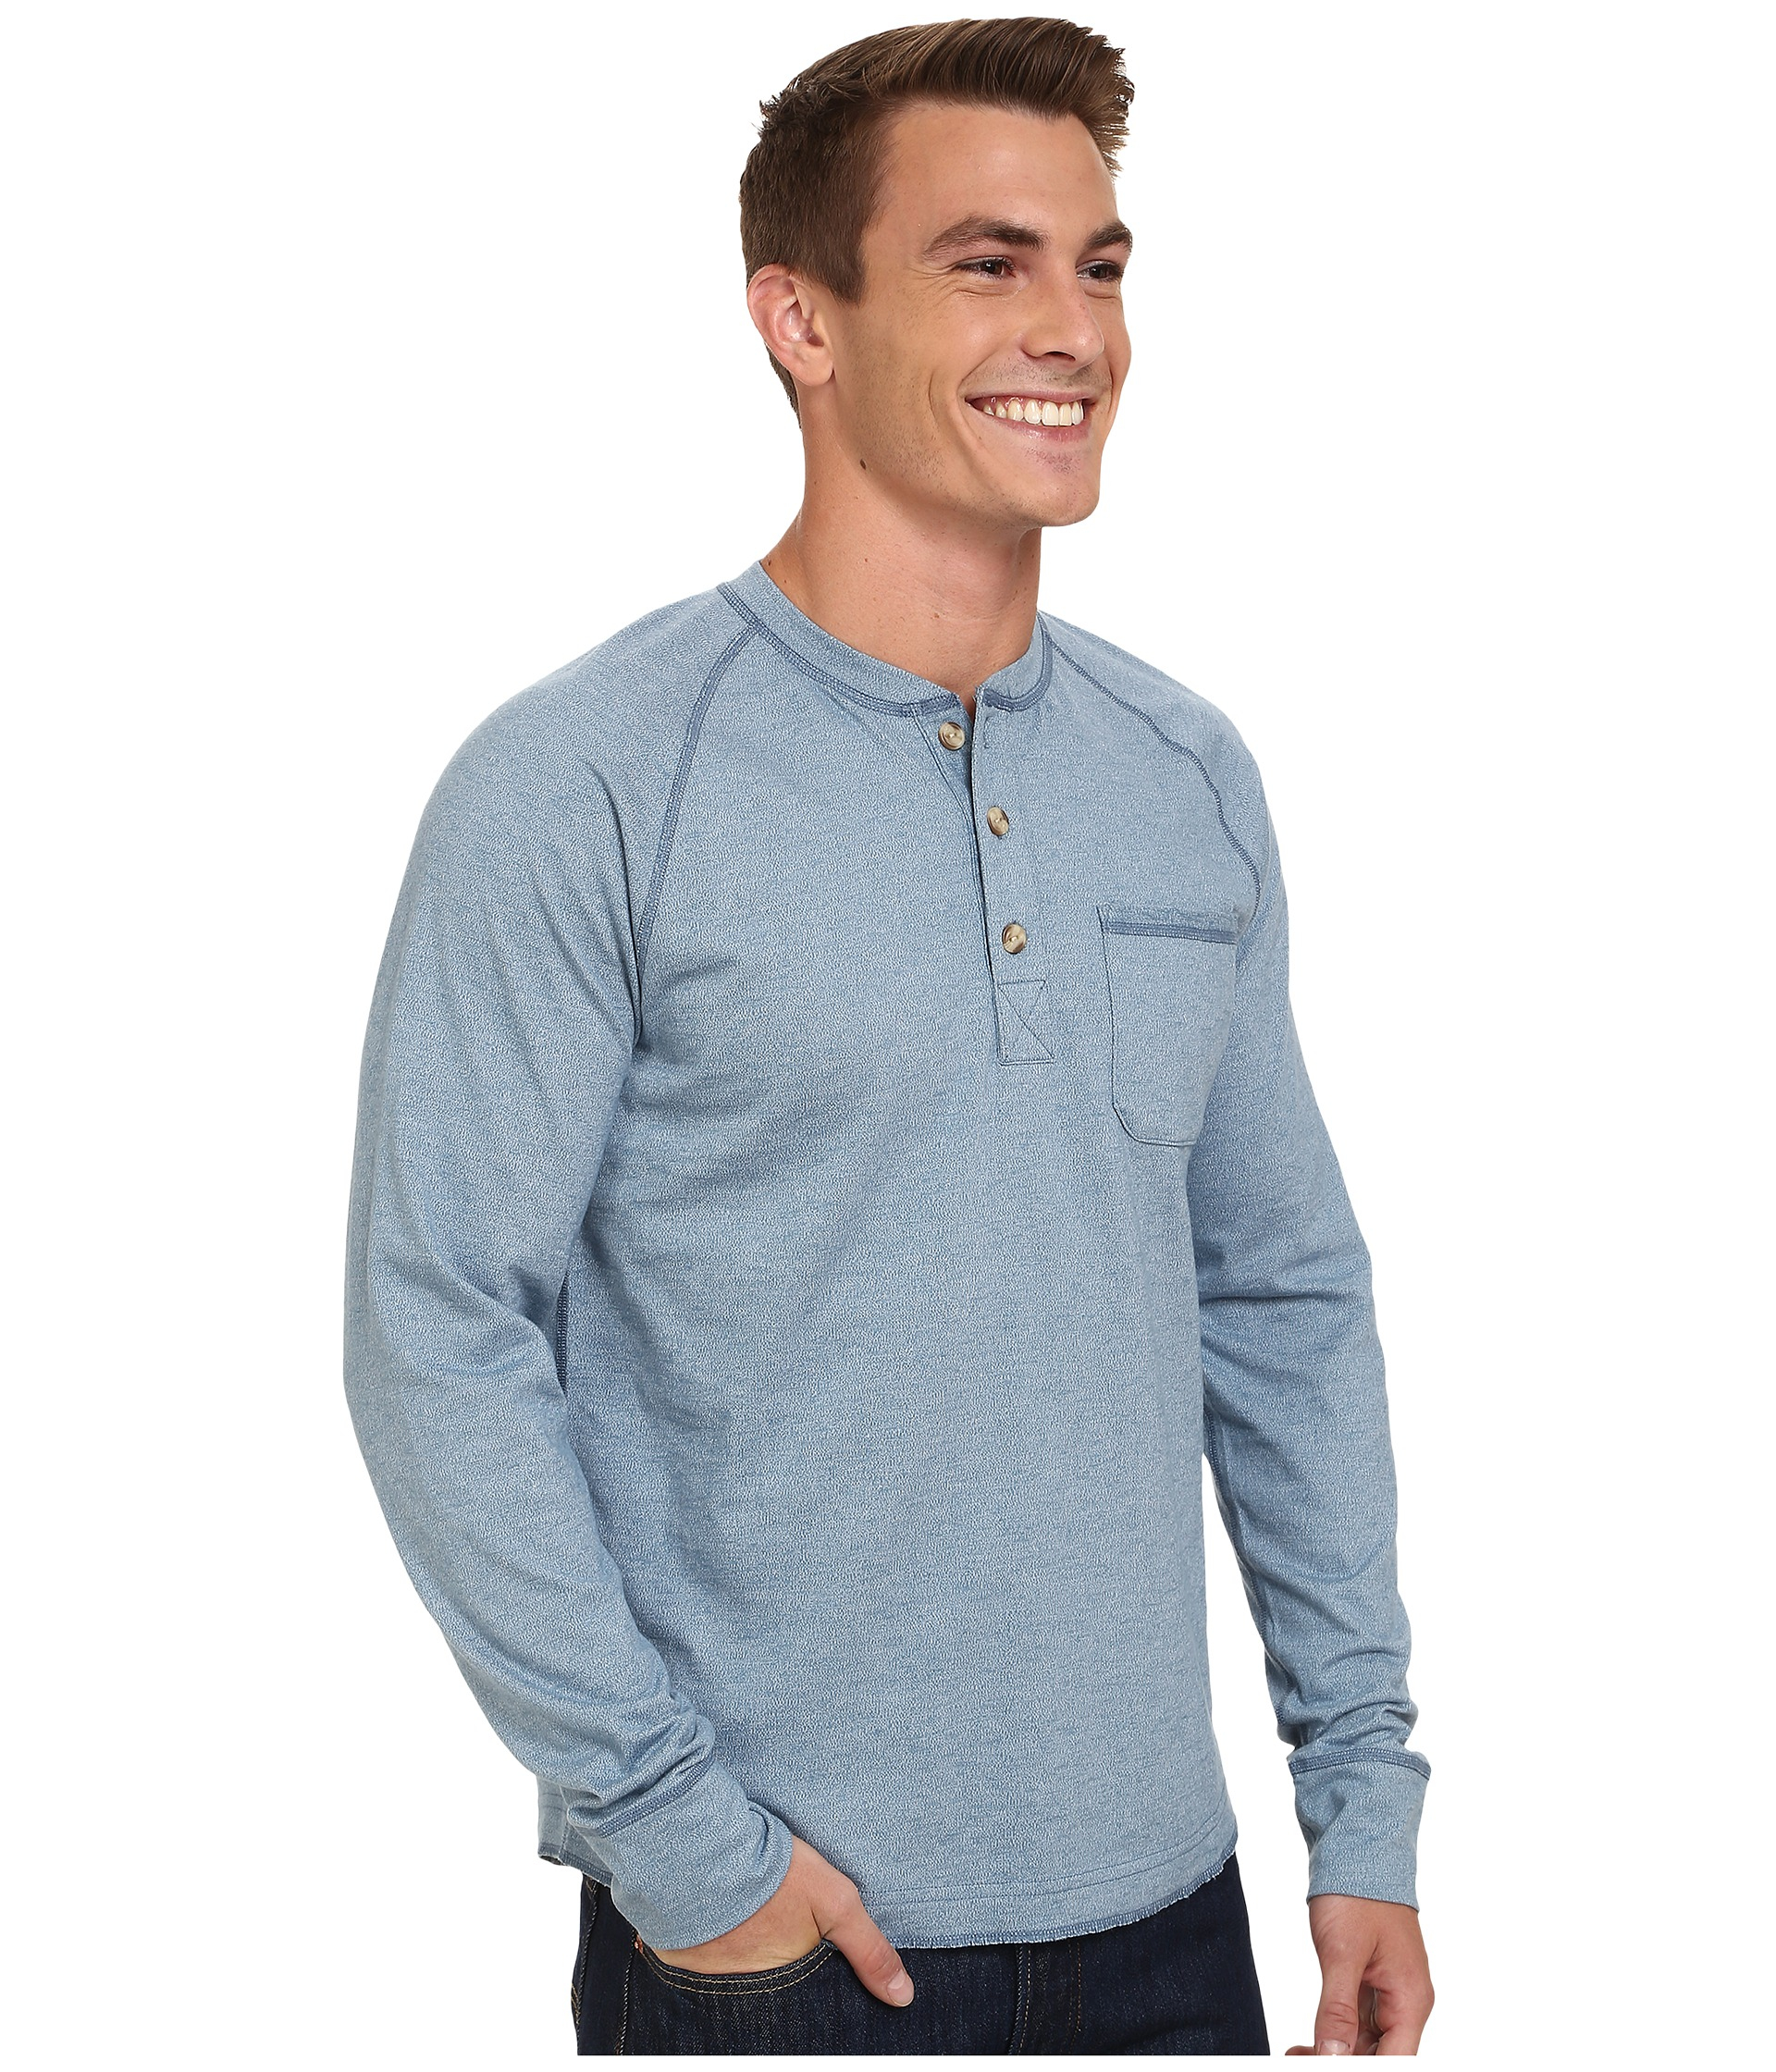 Shop long sleeve henley shirt at Neiman Marcus, where you will find free shipping on the latest in fashion from top designers.